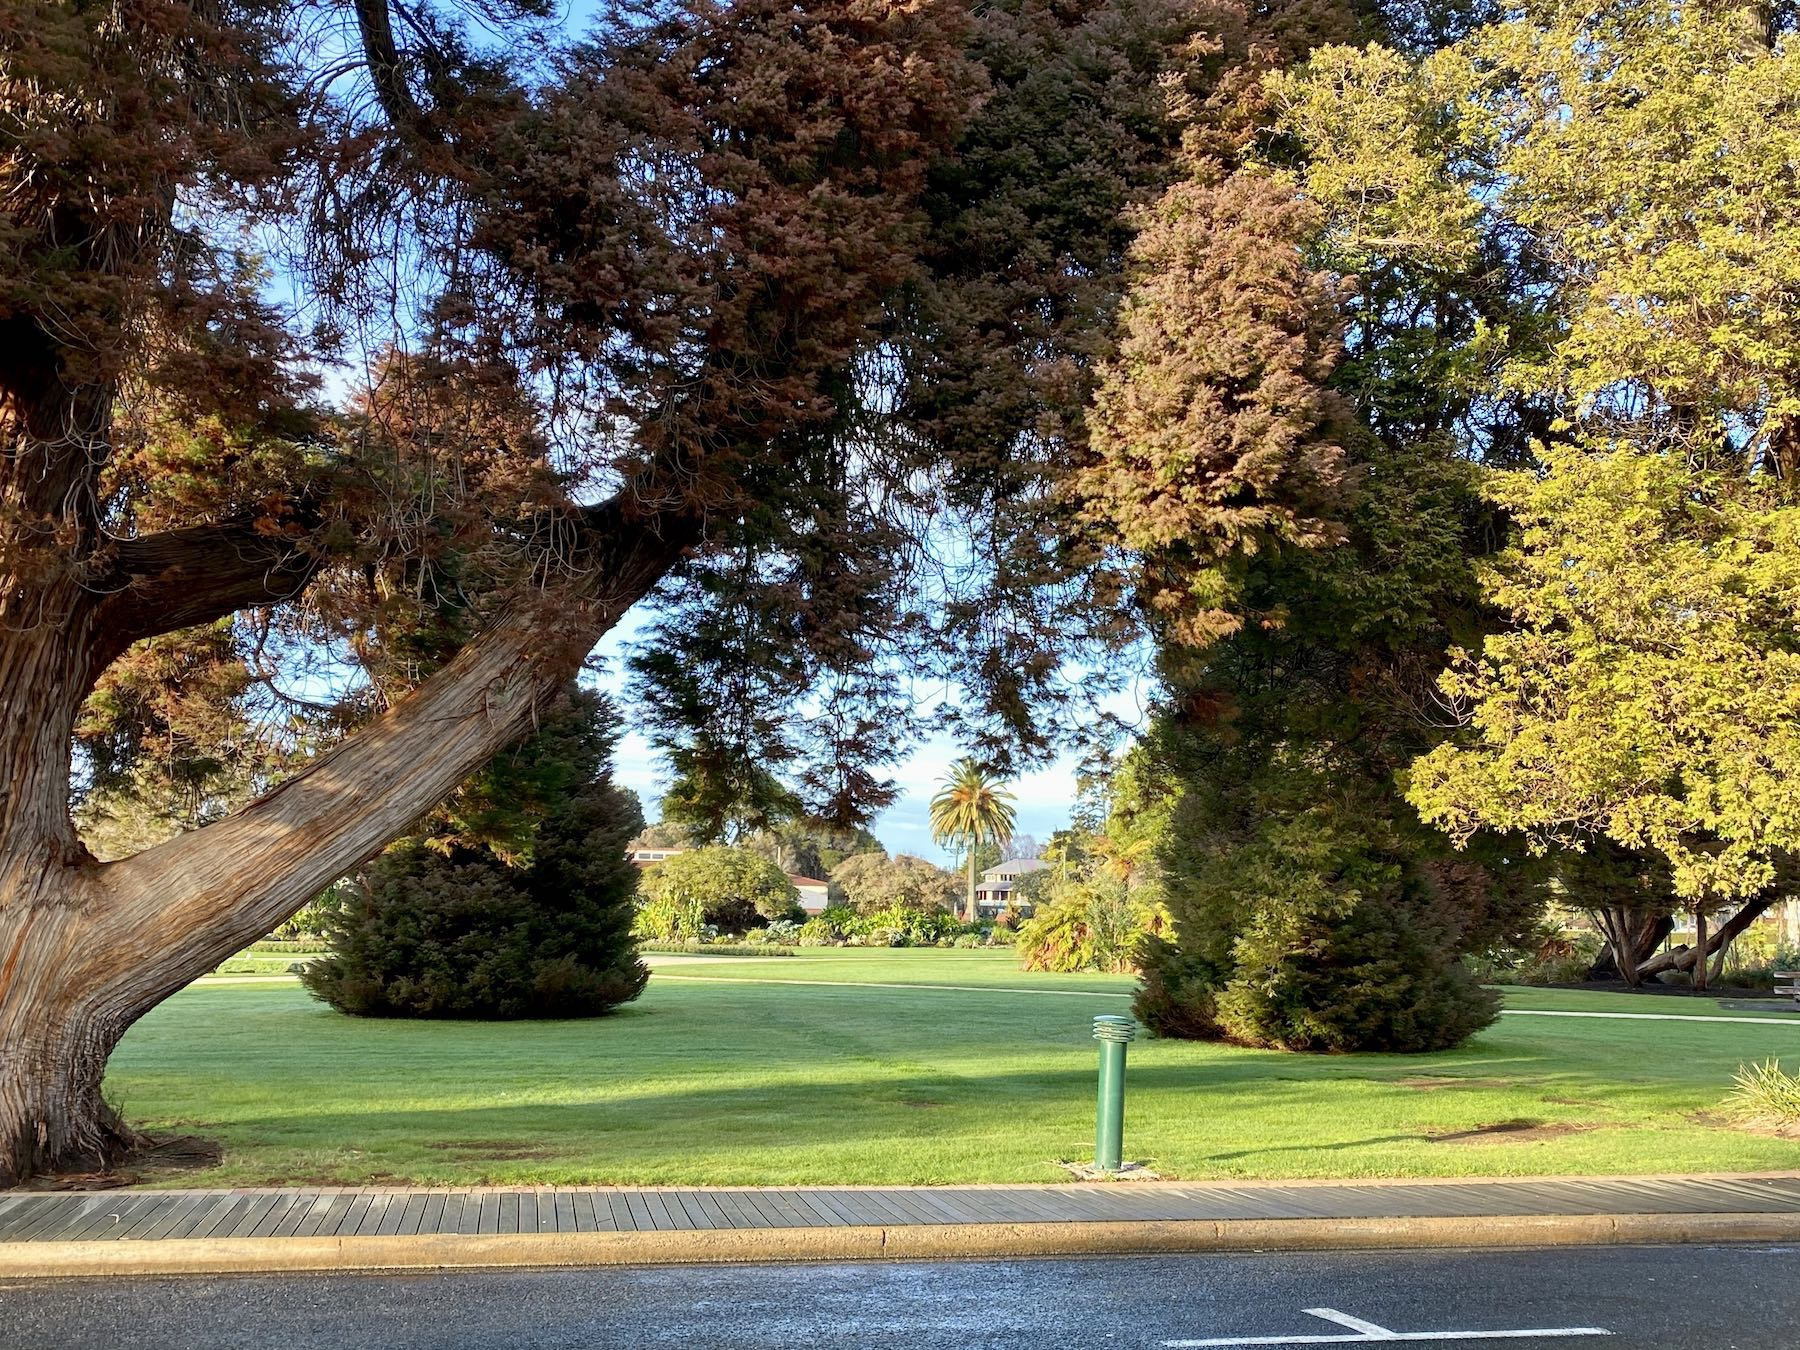 Various trees and a green lawn.